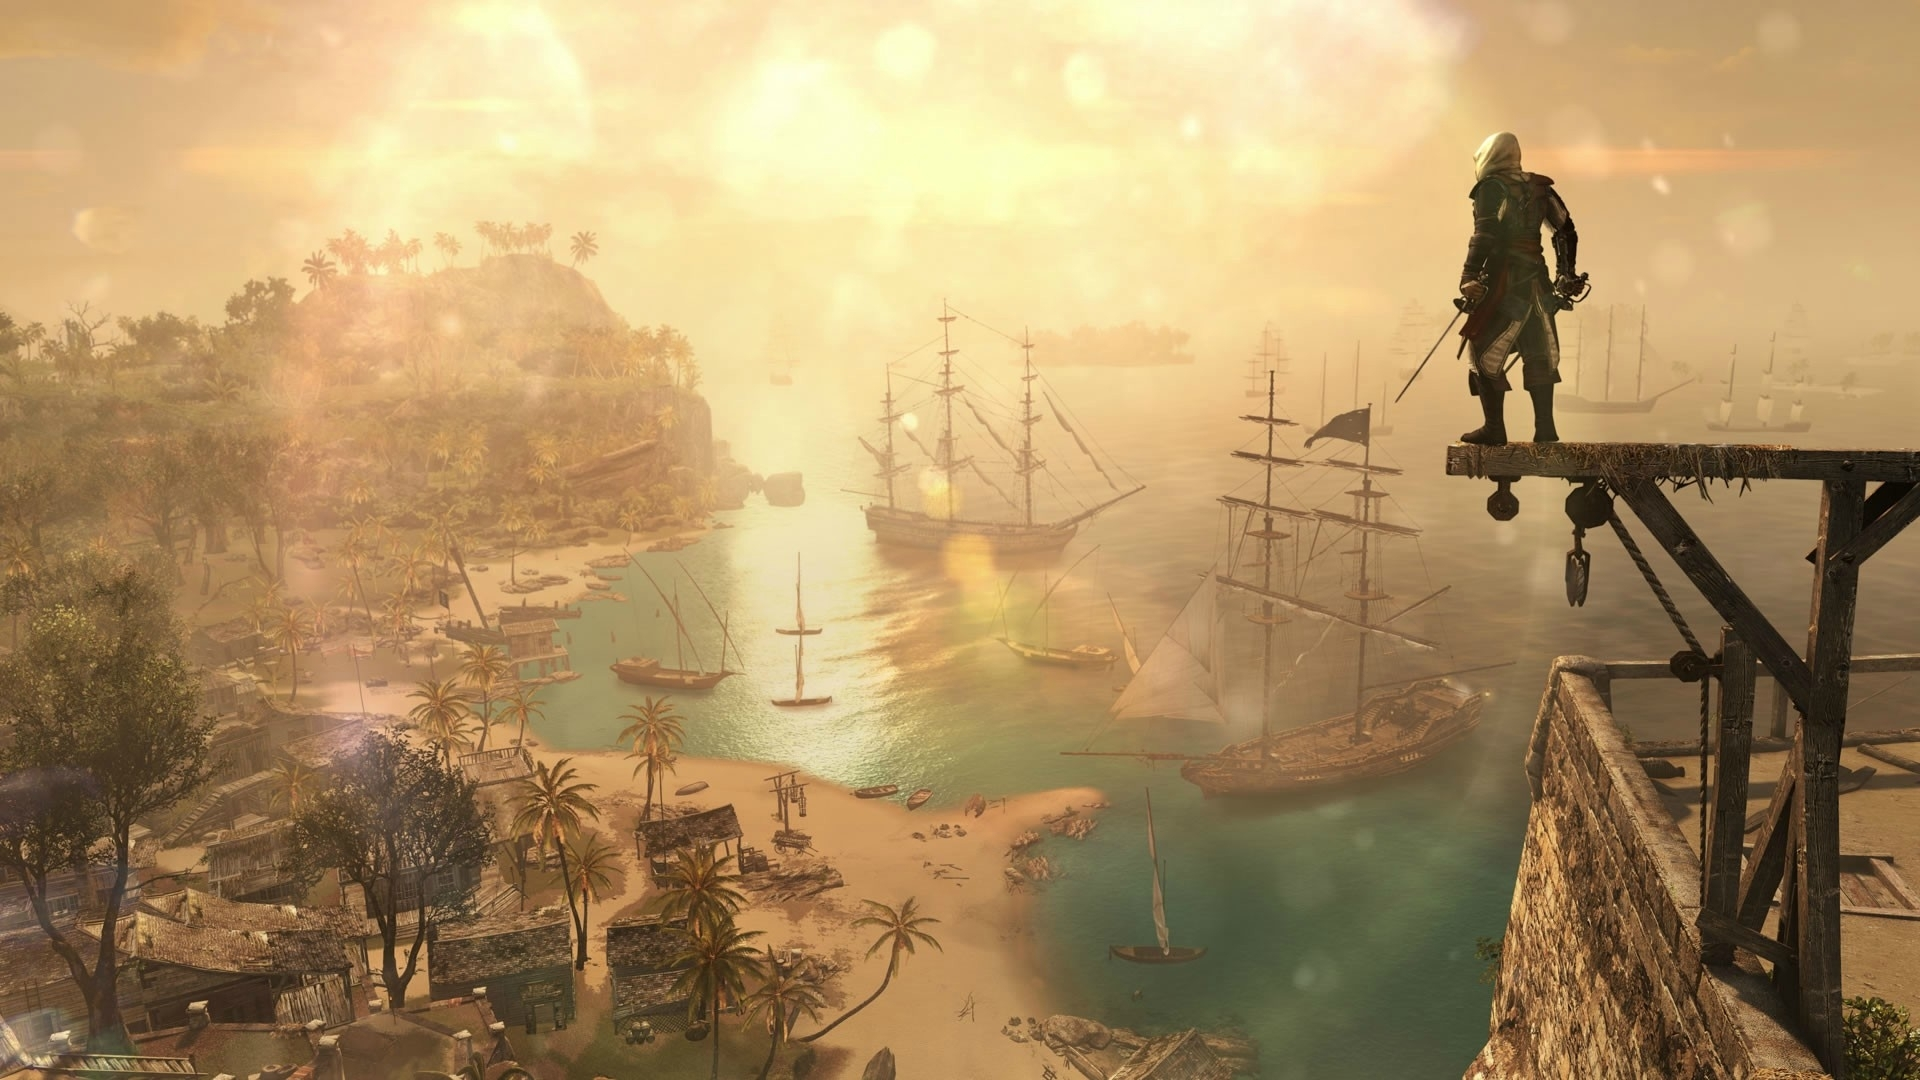 10 new assassins creed black flag wallpaper full hd 19201080 for title assassinamp039s creed iv black flag full hd wallpaper and background dimension 1920 x 1080 file type jpgjpeg voltagebd Image collections